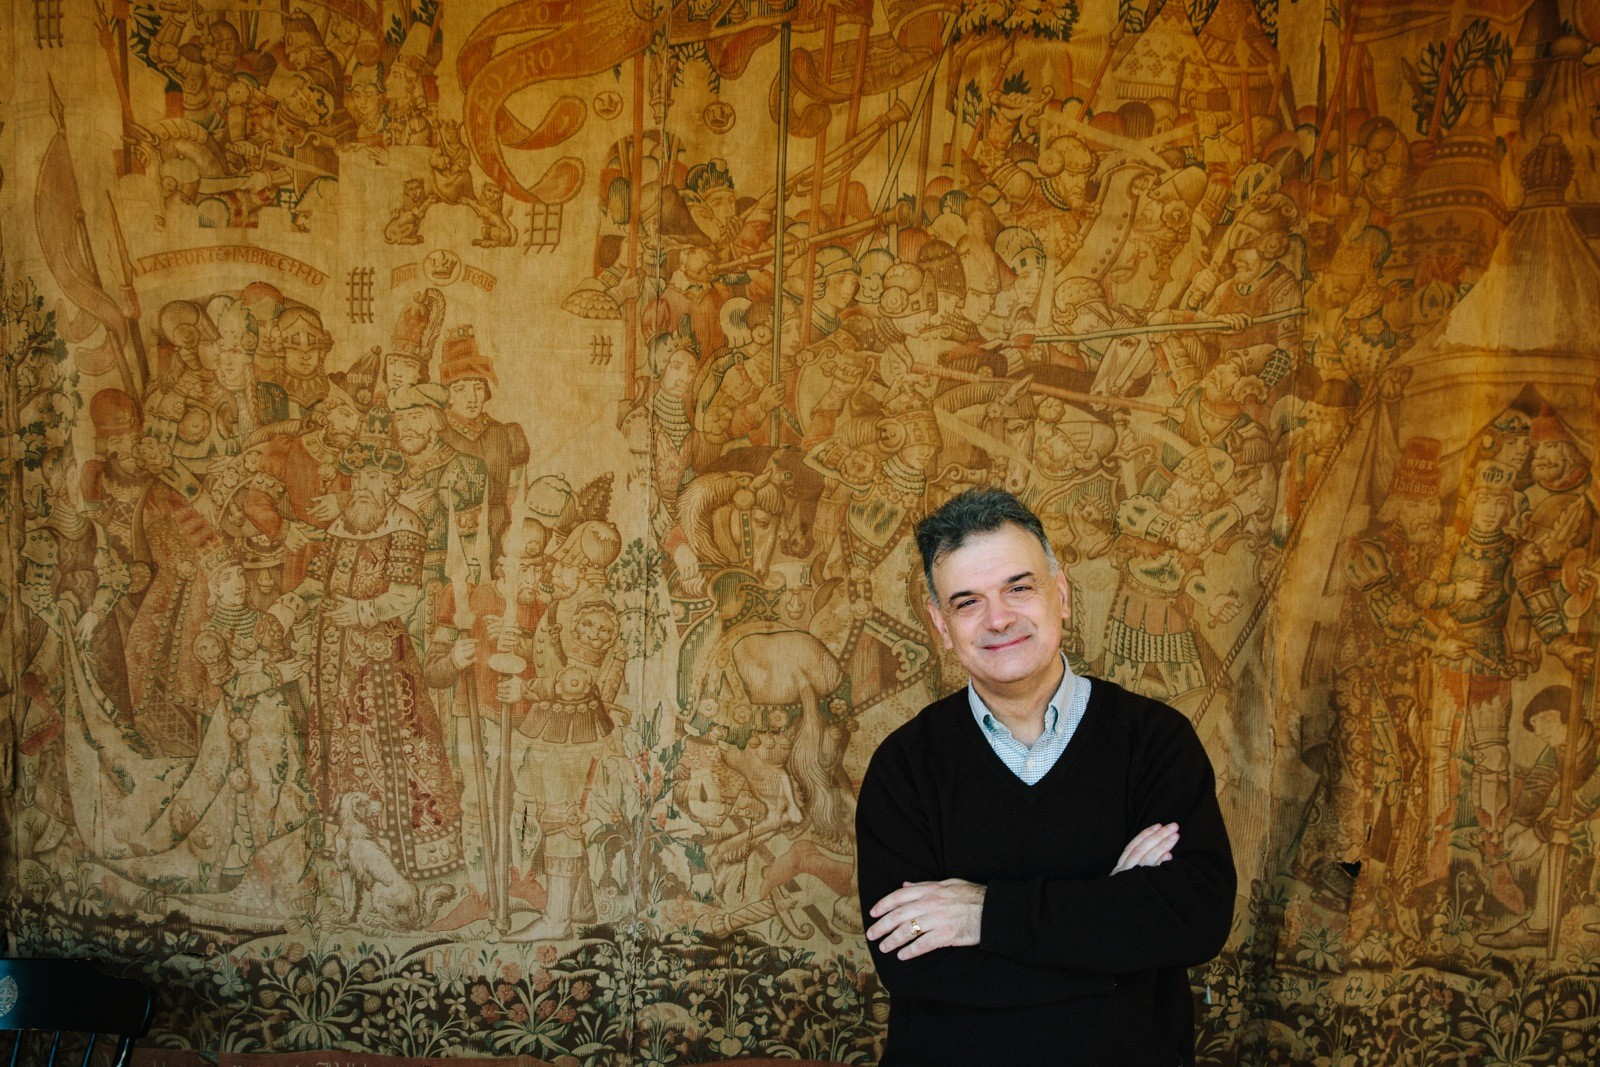 Classics Professor Chris McDonough surrounded by scenes from the Trojan War, depicted in what may be a 19th-century reproduction of a 15th-century Belgian tapestry that hangs in the McGriff Alumni House.